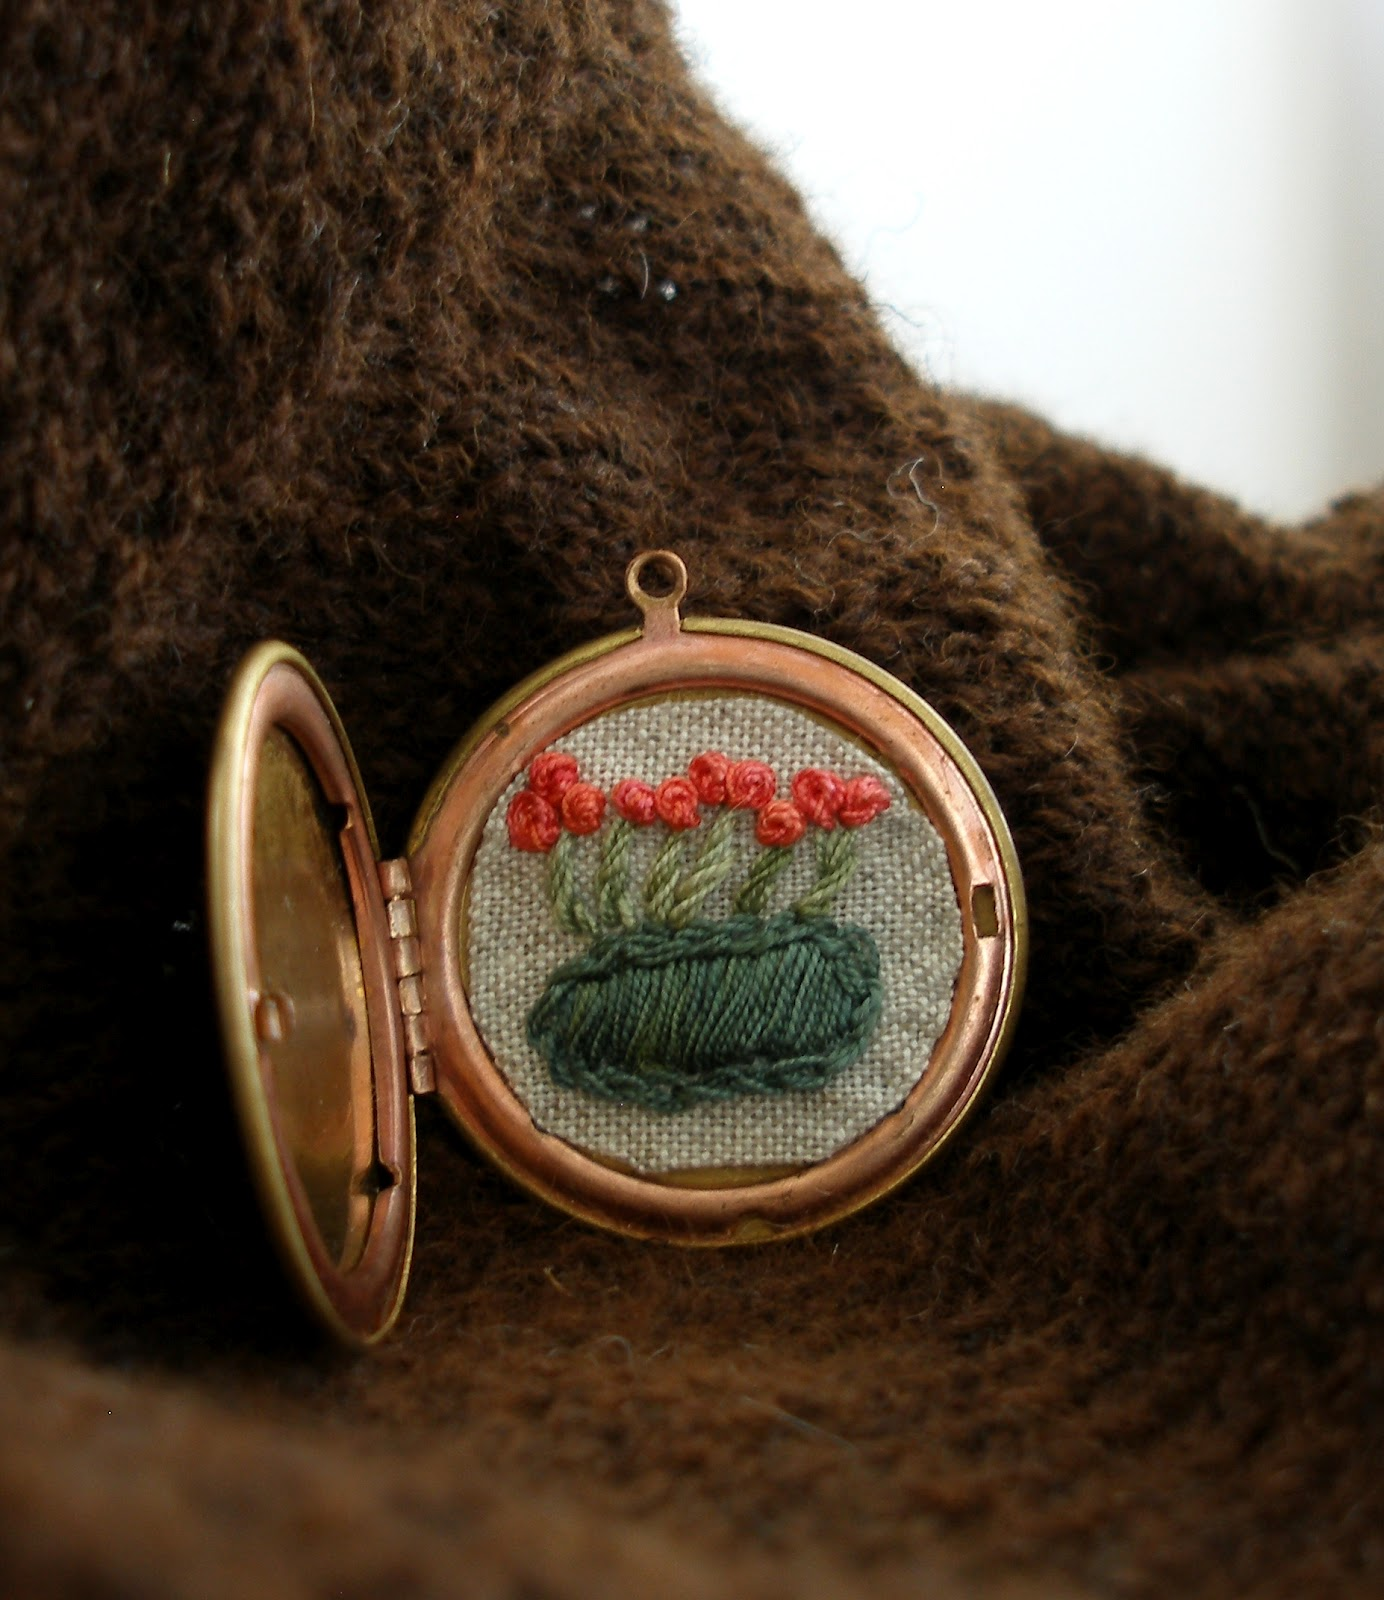 The knitting by mr puffy dog embroidered locket